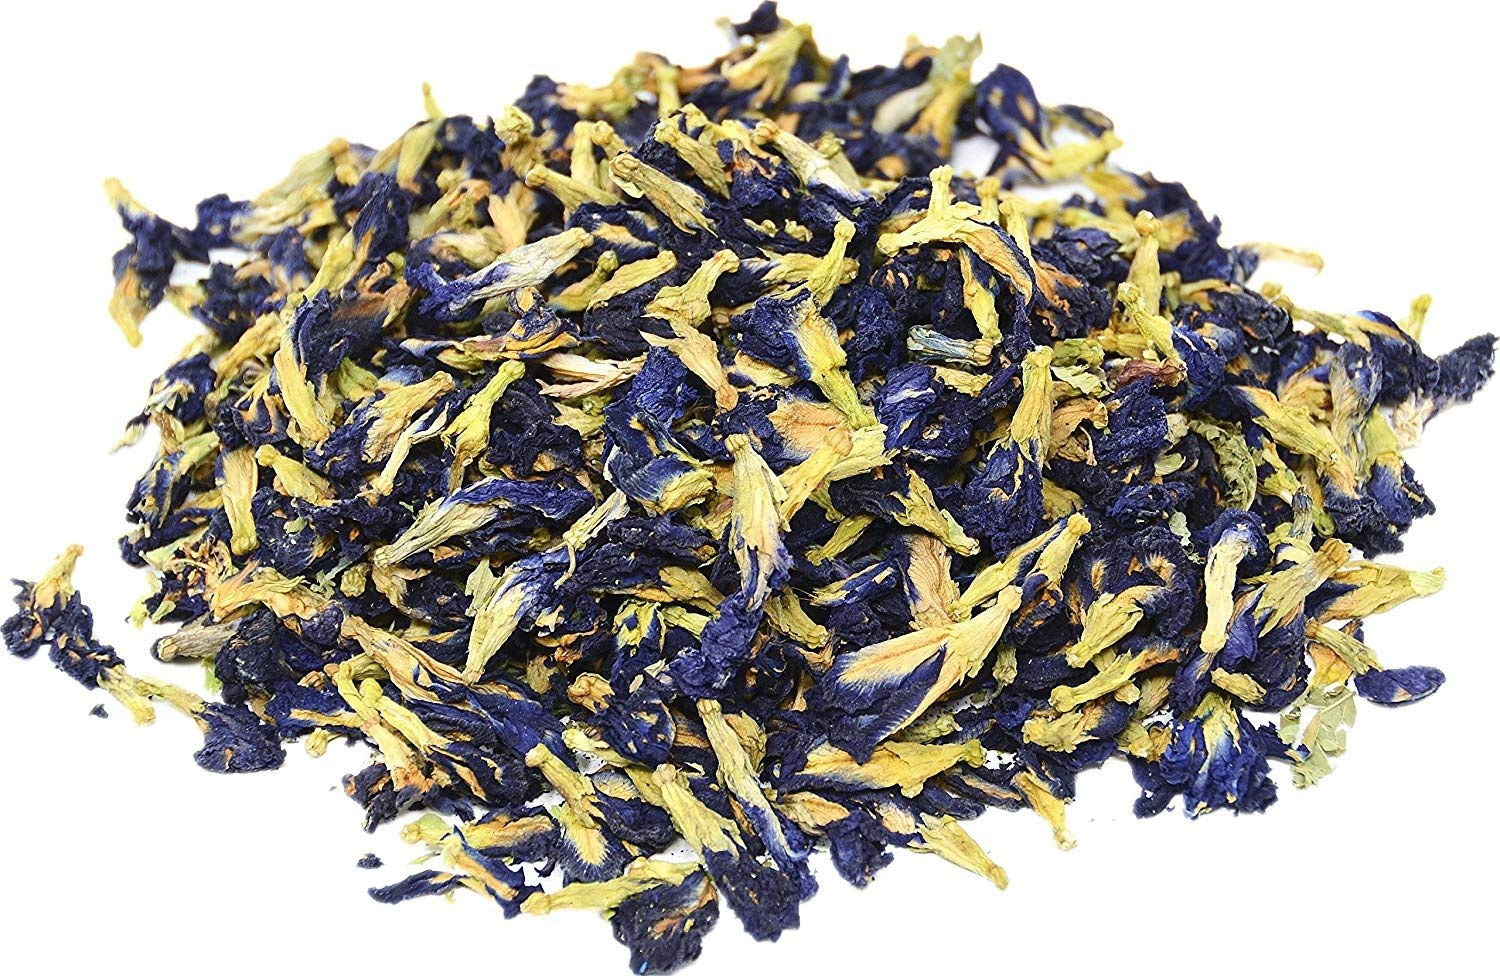 Three Squirrels 100% Natural Dried Pure Whole Butterfly Pea Flower Tea, Perfect Blue Purple Coloring for Food and Beverage, 100g